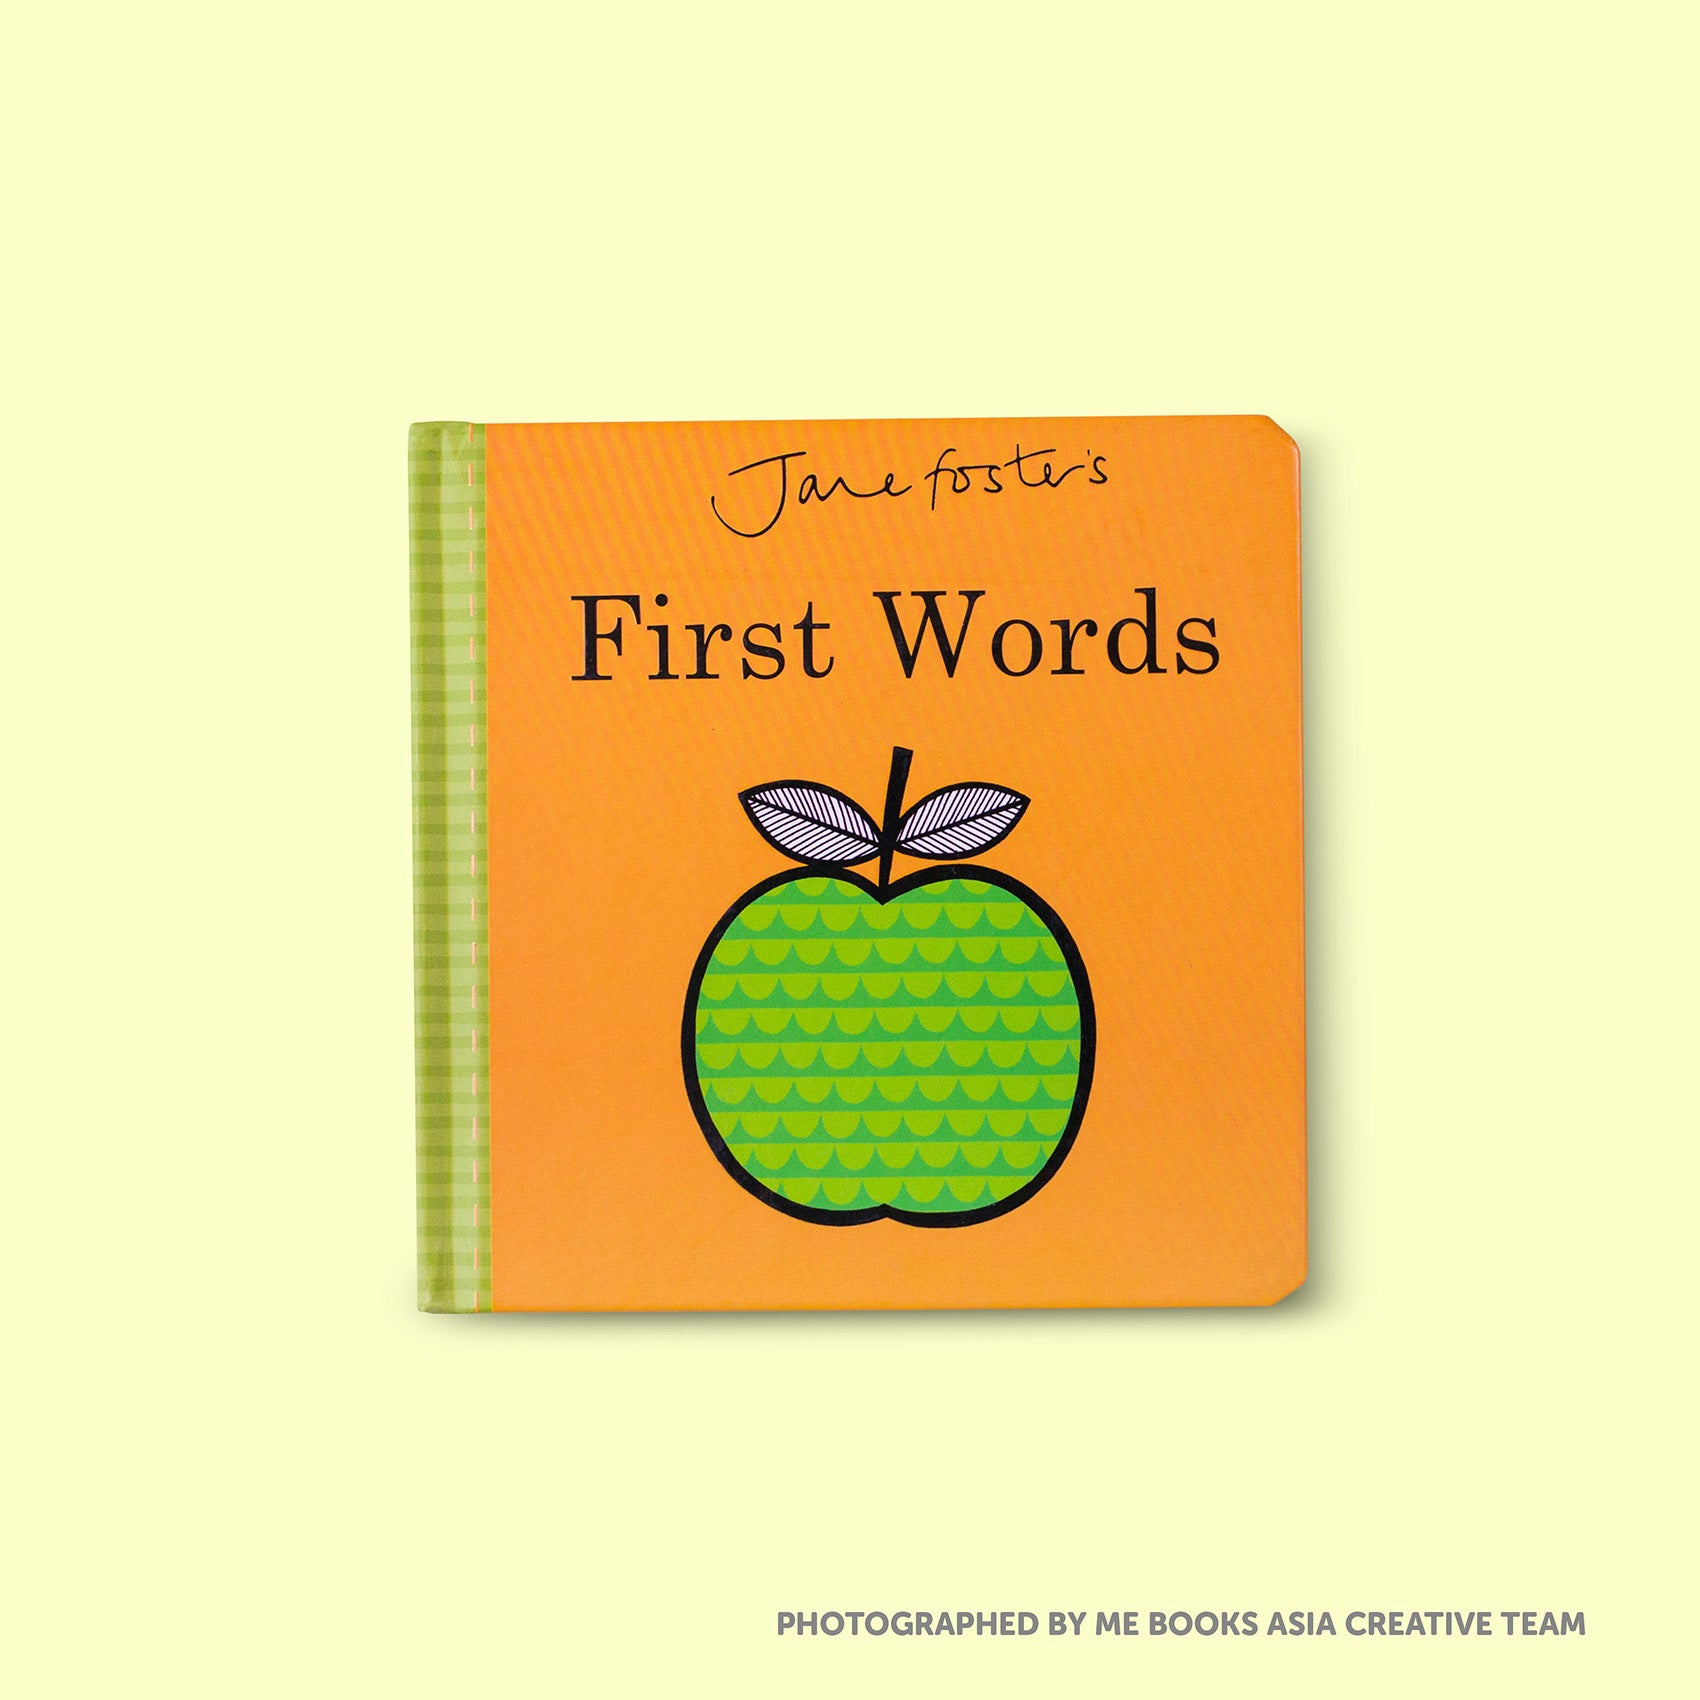 Jane Foster's First Words Front Cover | Me Books Store